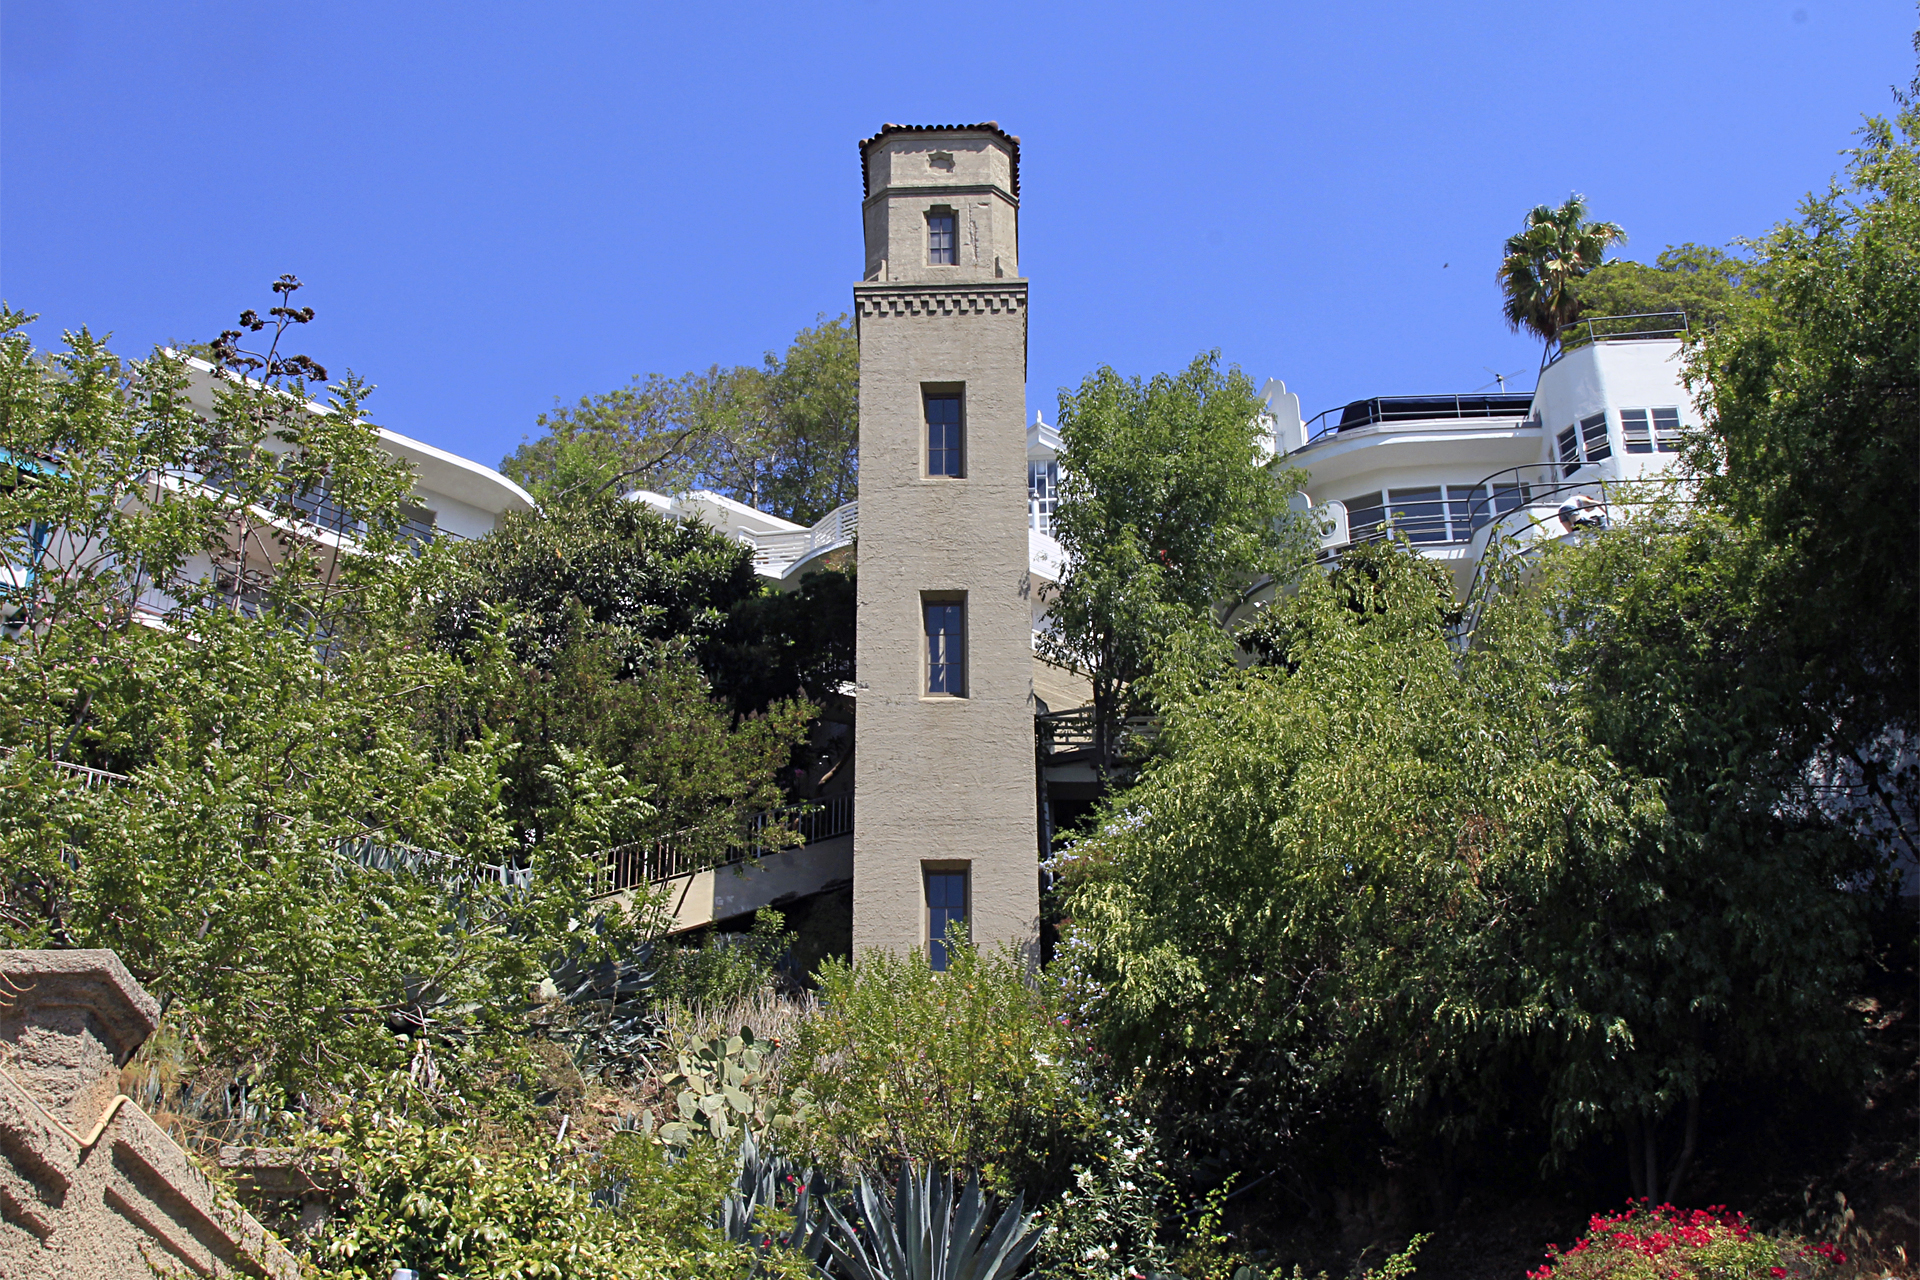 The tower climbs up to Broadview Terrace, where it meets Los Altos Place. All of the homes associated with the tower have addresses on Broadview Terrace.